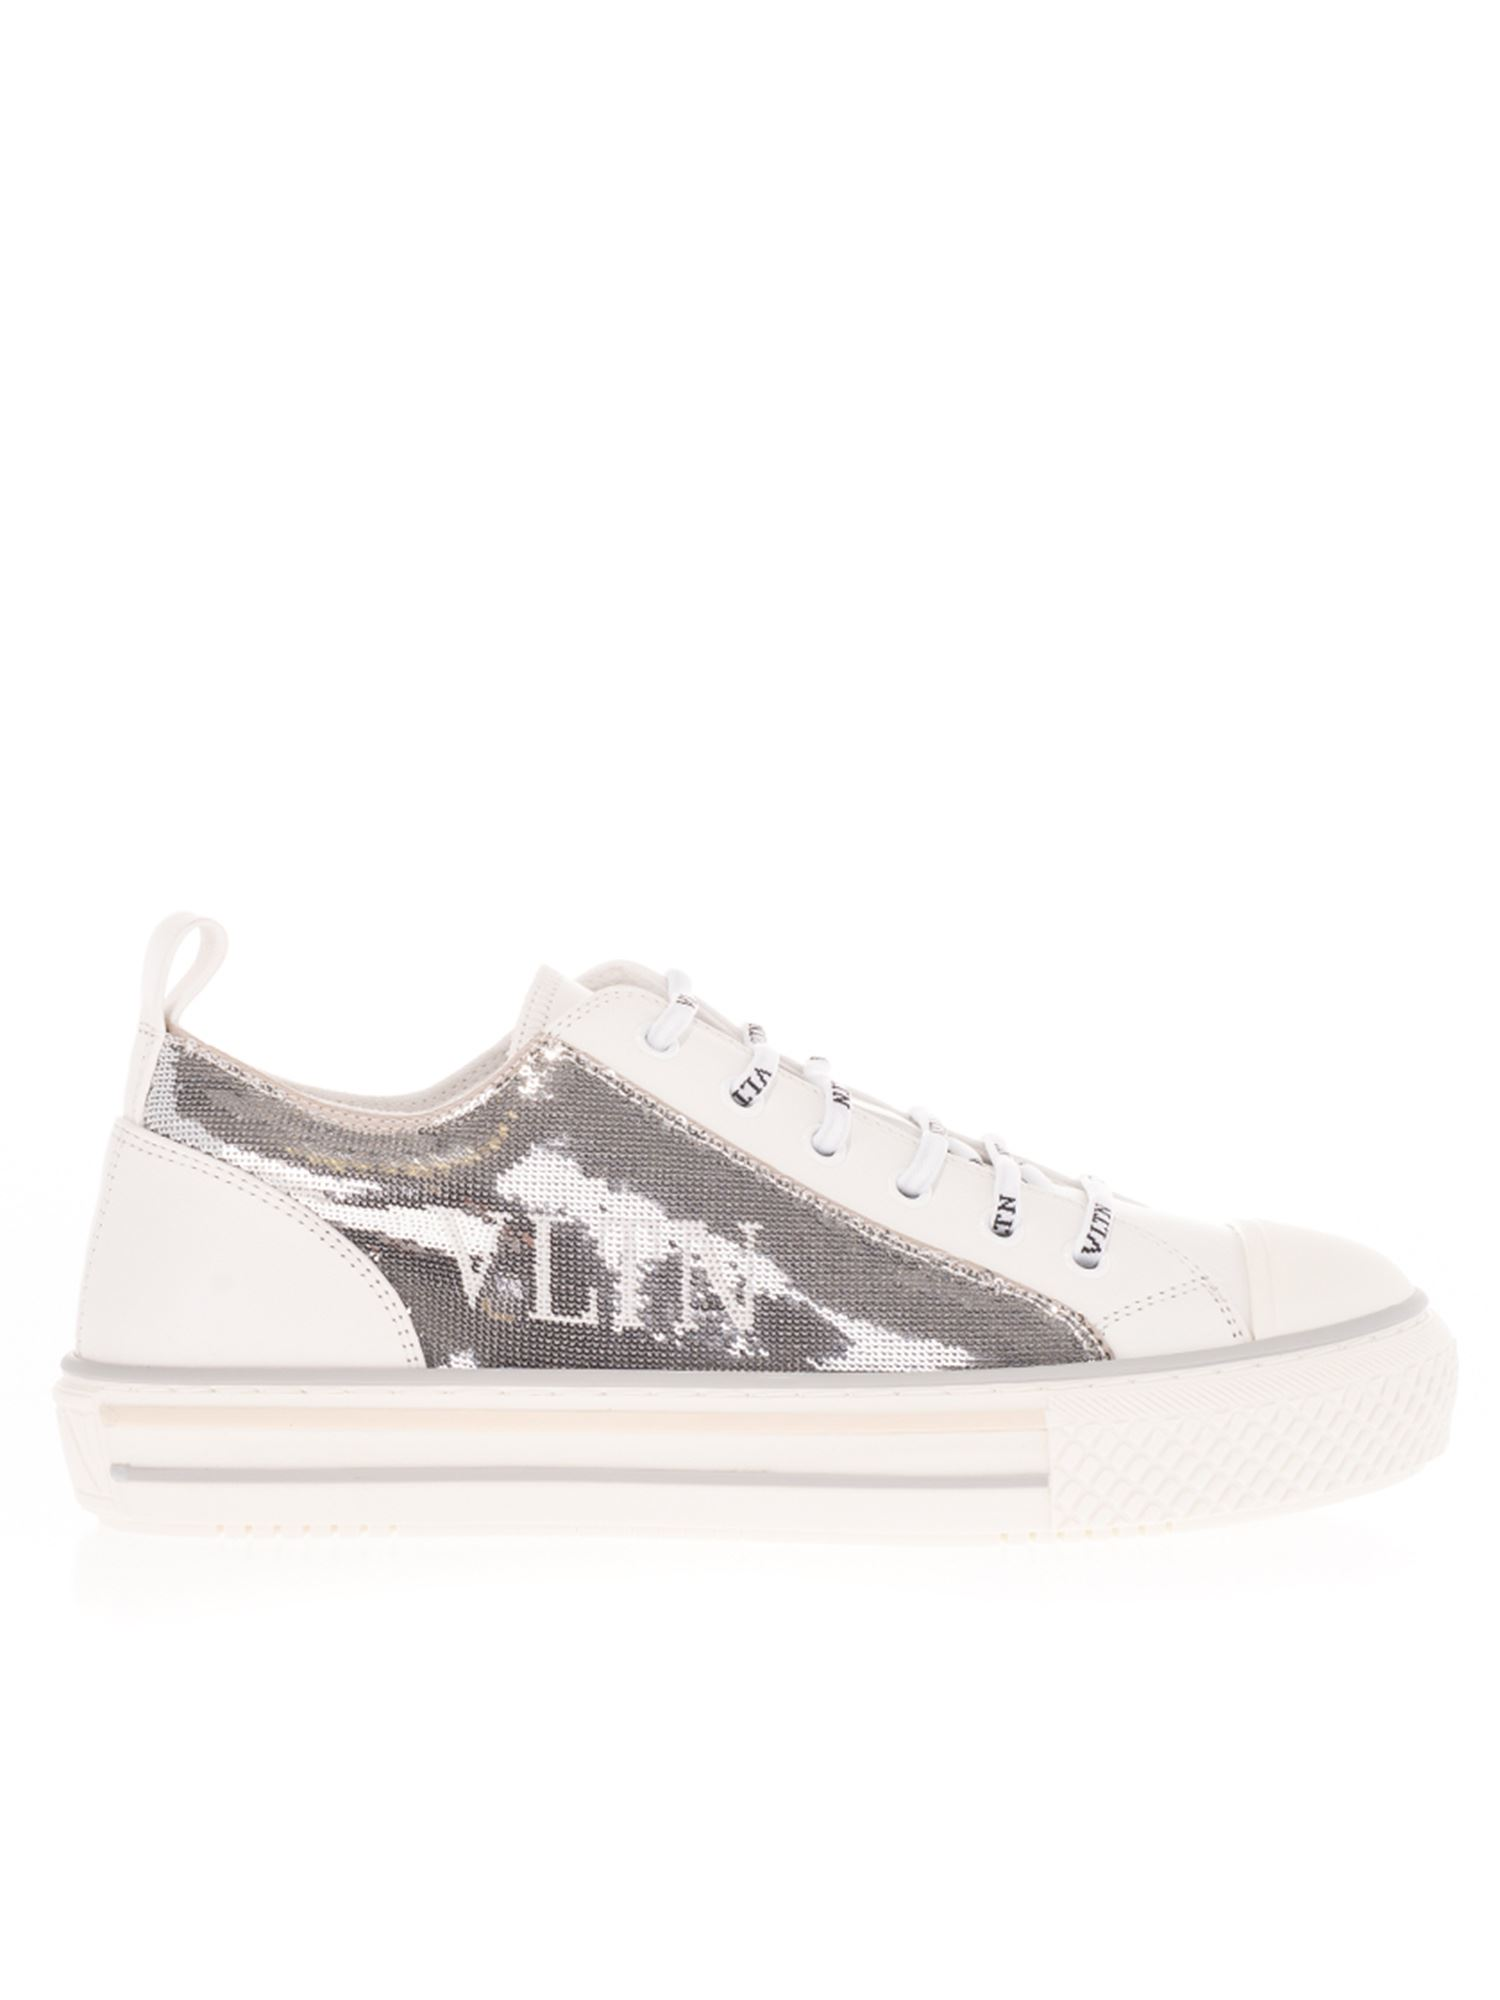 Valentino SEQUINED LOW TOP SNEAKERS IN WHITE